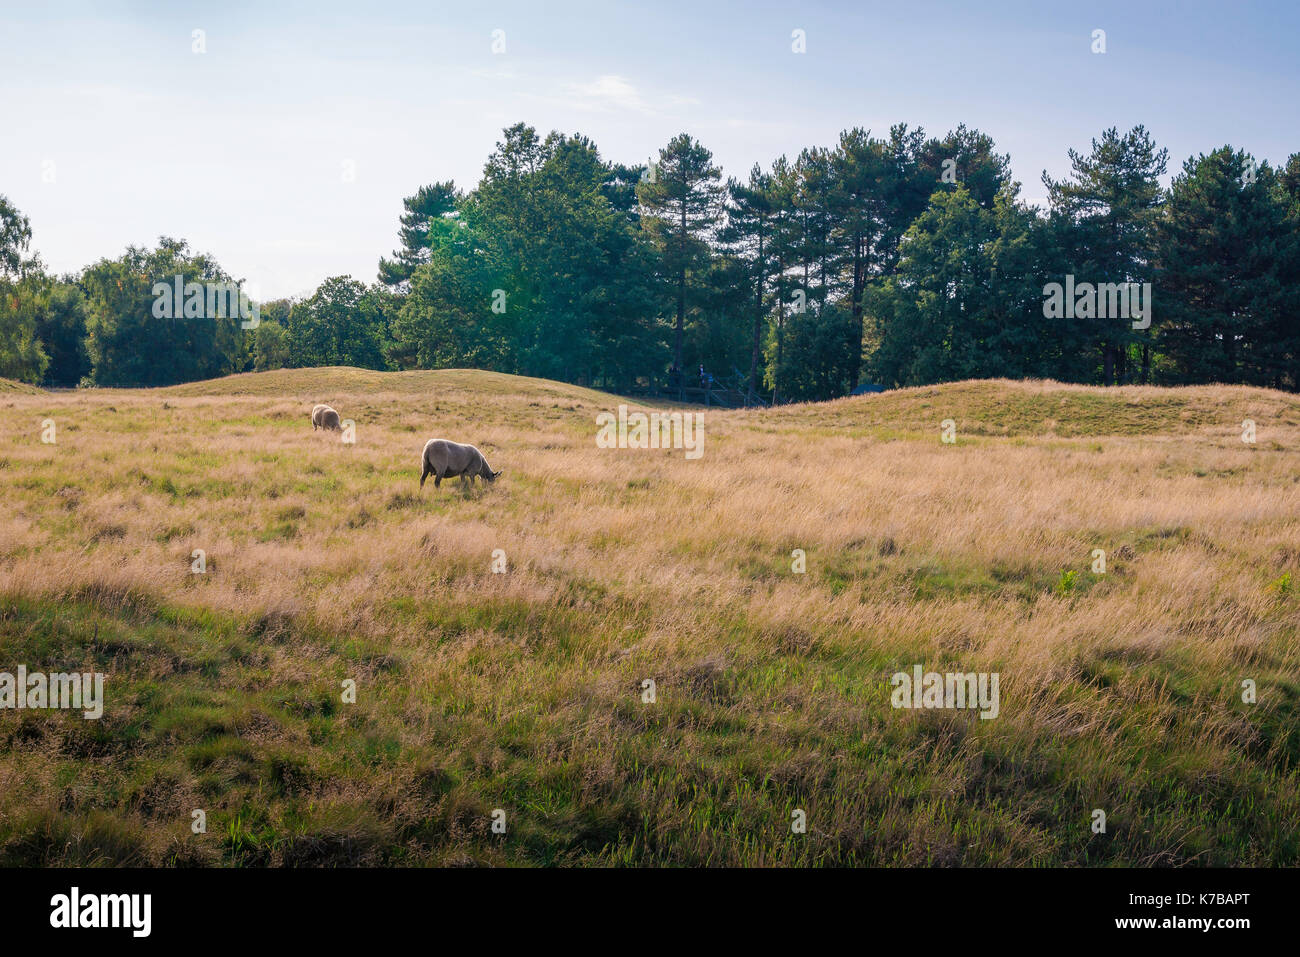 Sutton Hoo, sheep graze near a series of low-lying Anglo Saxon burial mounds at Sutton Hoo, Suffolk, UK. - Stock Image